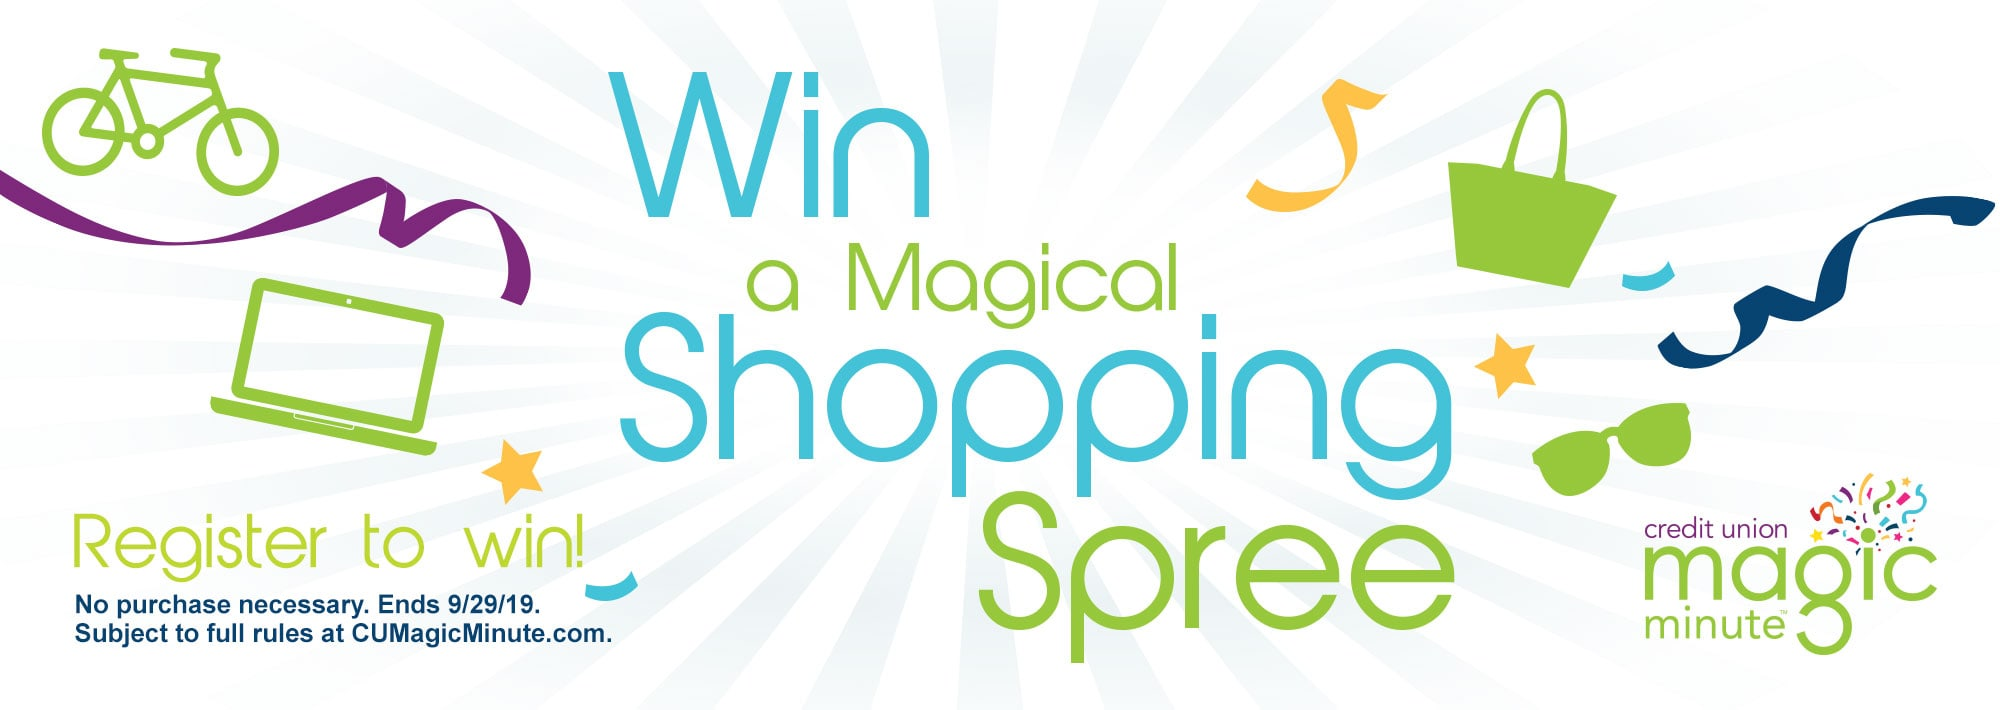 Win a Magical Shopping Spree. Register to win!